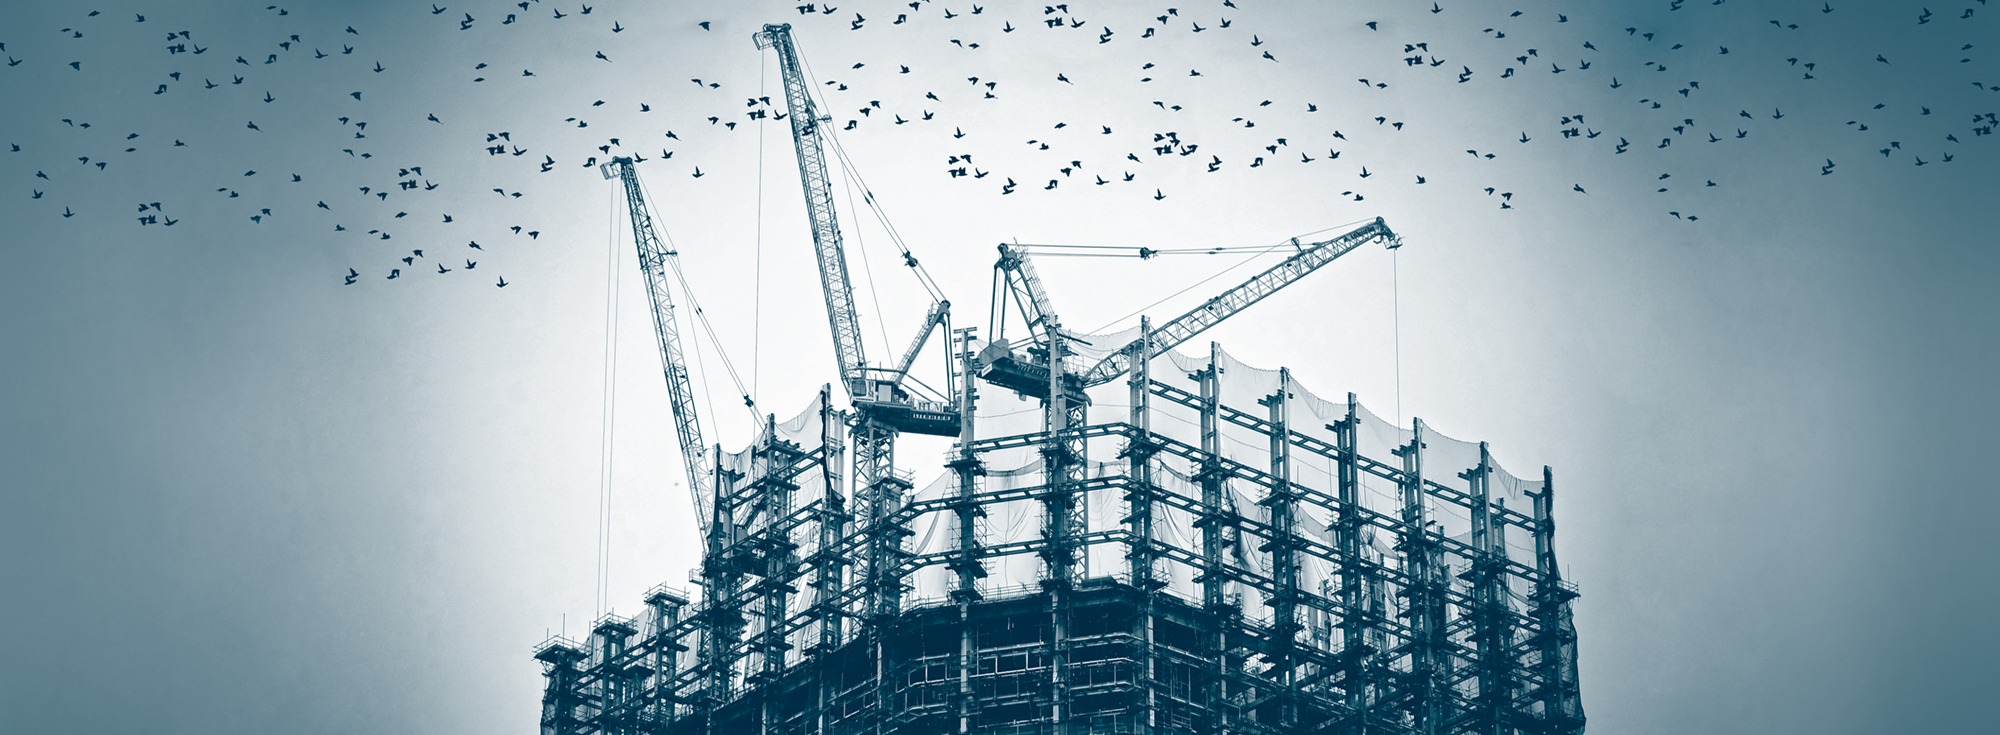 Carelli construction image with clear background